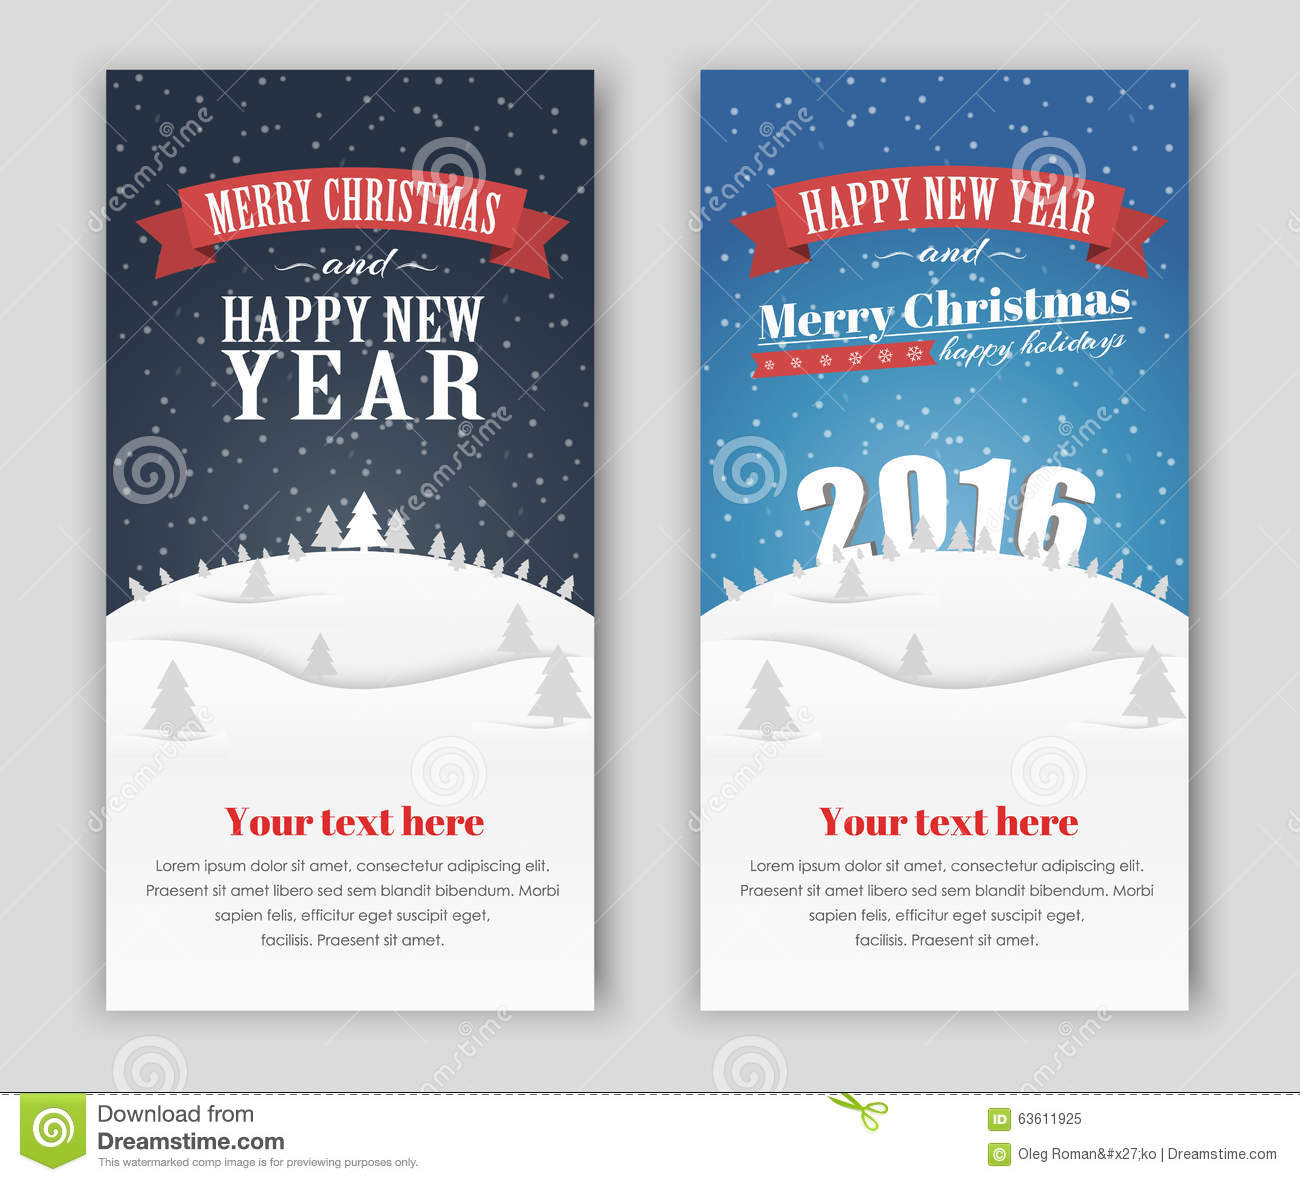 design banner merry christmas and happy new year stock vector design banner merry christmas and happy new year